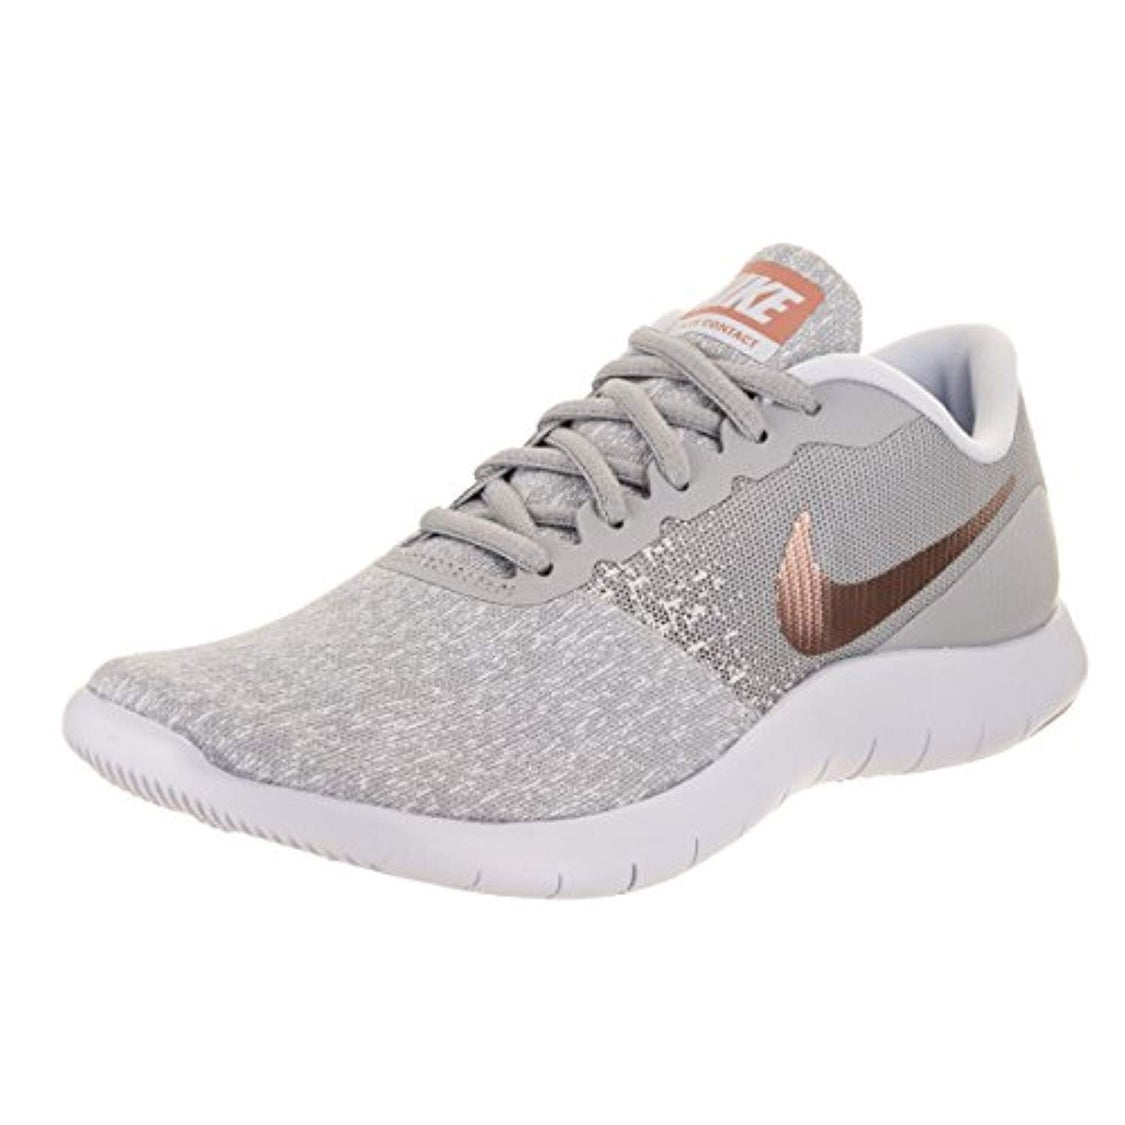 428766171ad67 Shop Nike Women s Flex Contact Running Shoe Wolf Grey Metallic Rose Gold  (7.5 B(M) Us) - Free Shipping Today - Overstock - 25661930